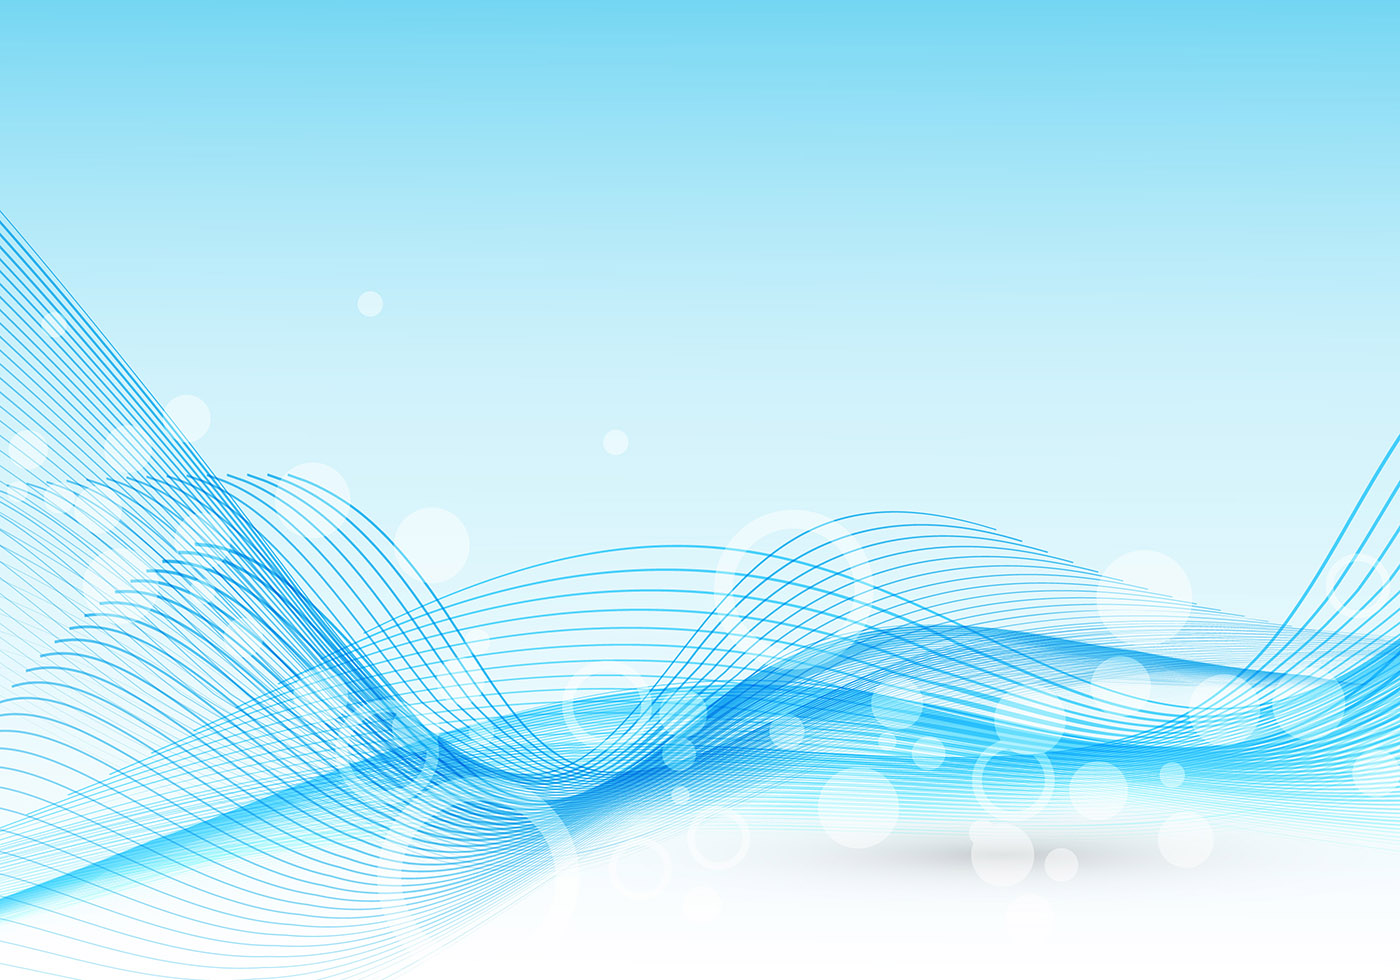 Abstract Light Blue Wave Vector - Download Free Vector Art ...